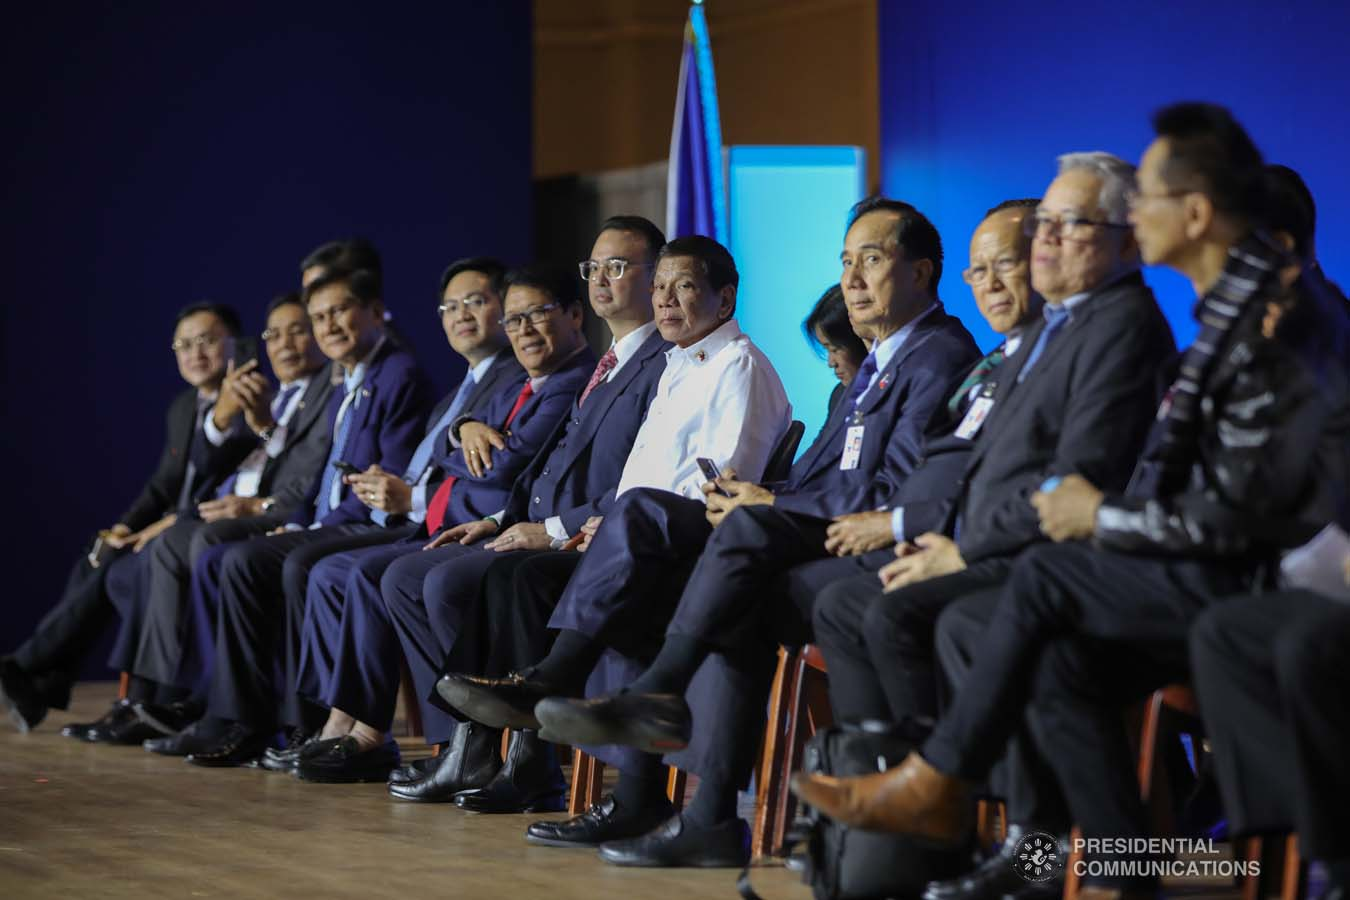 President Rodrigo Roa Duterte witnesses the program proper during his meeting with the Filipino community at the Exhibition of Achievements of National Economy (VDNH) in Moscow on October 5, 2019. ROBINSON NIÑAL JR./PRESIDENTIAL PHOTO